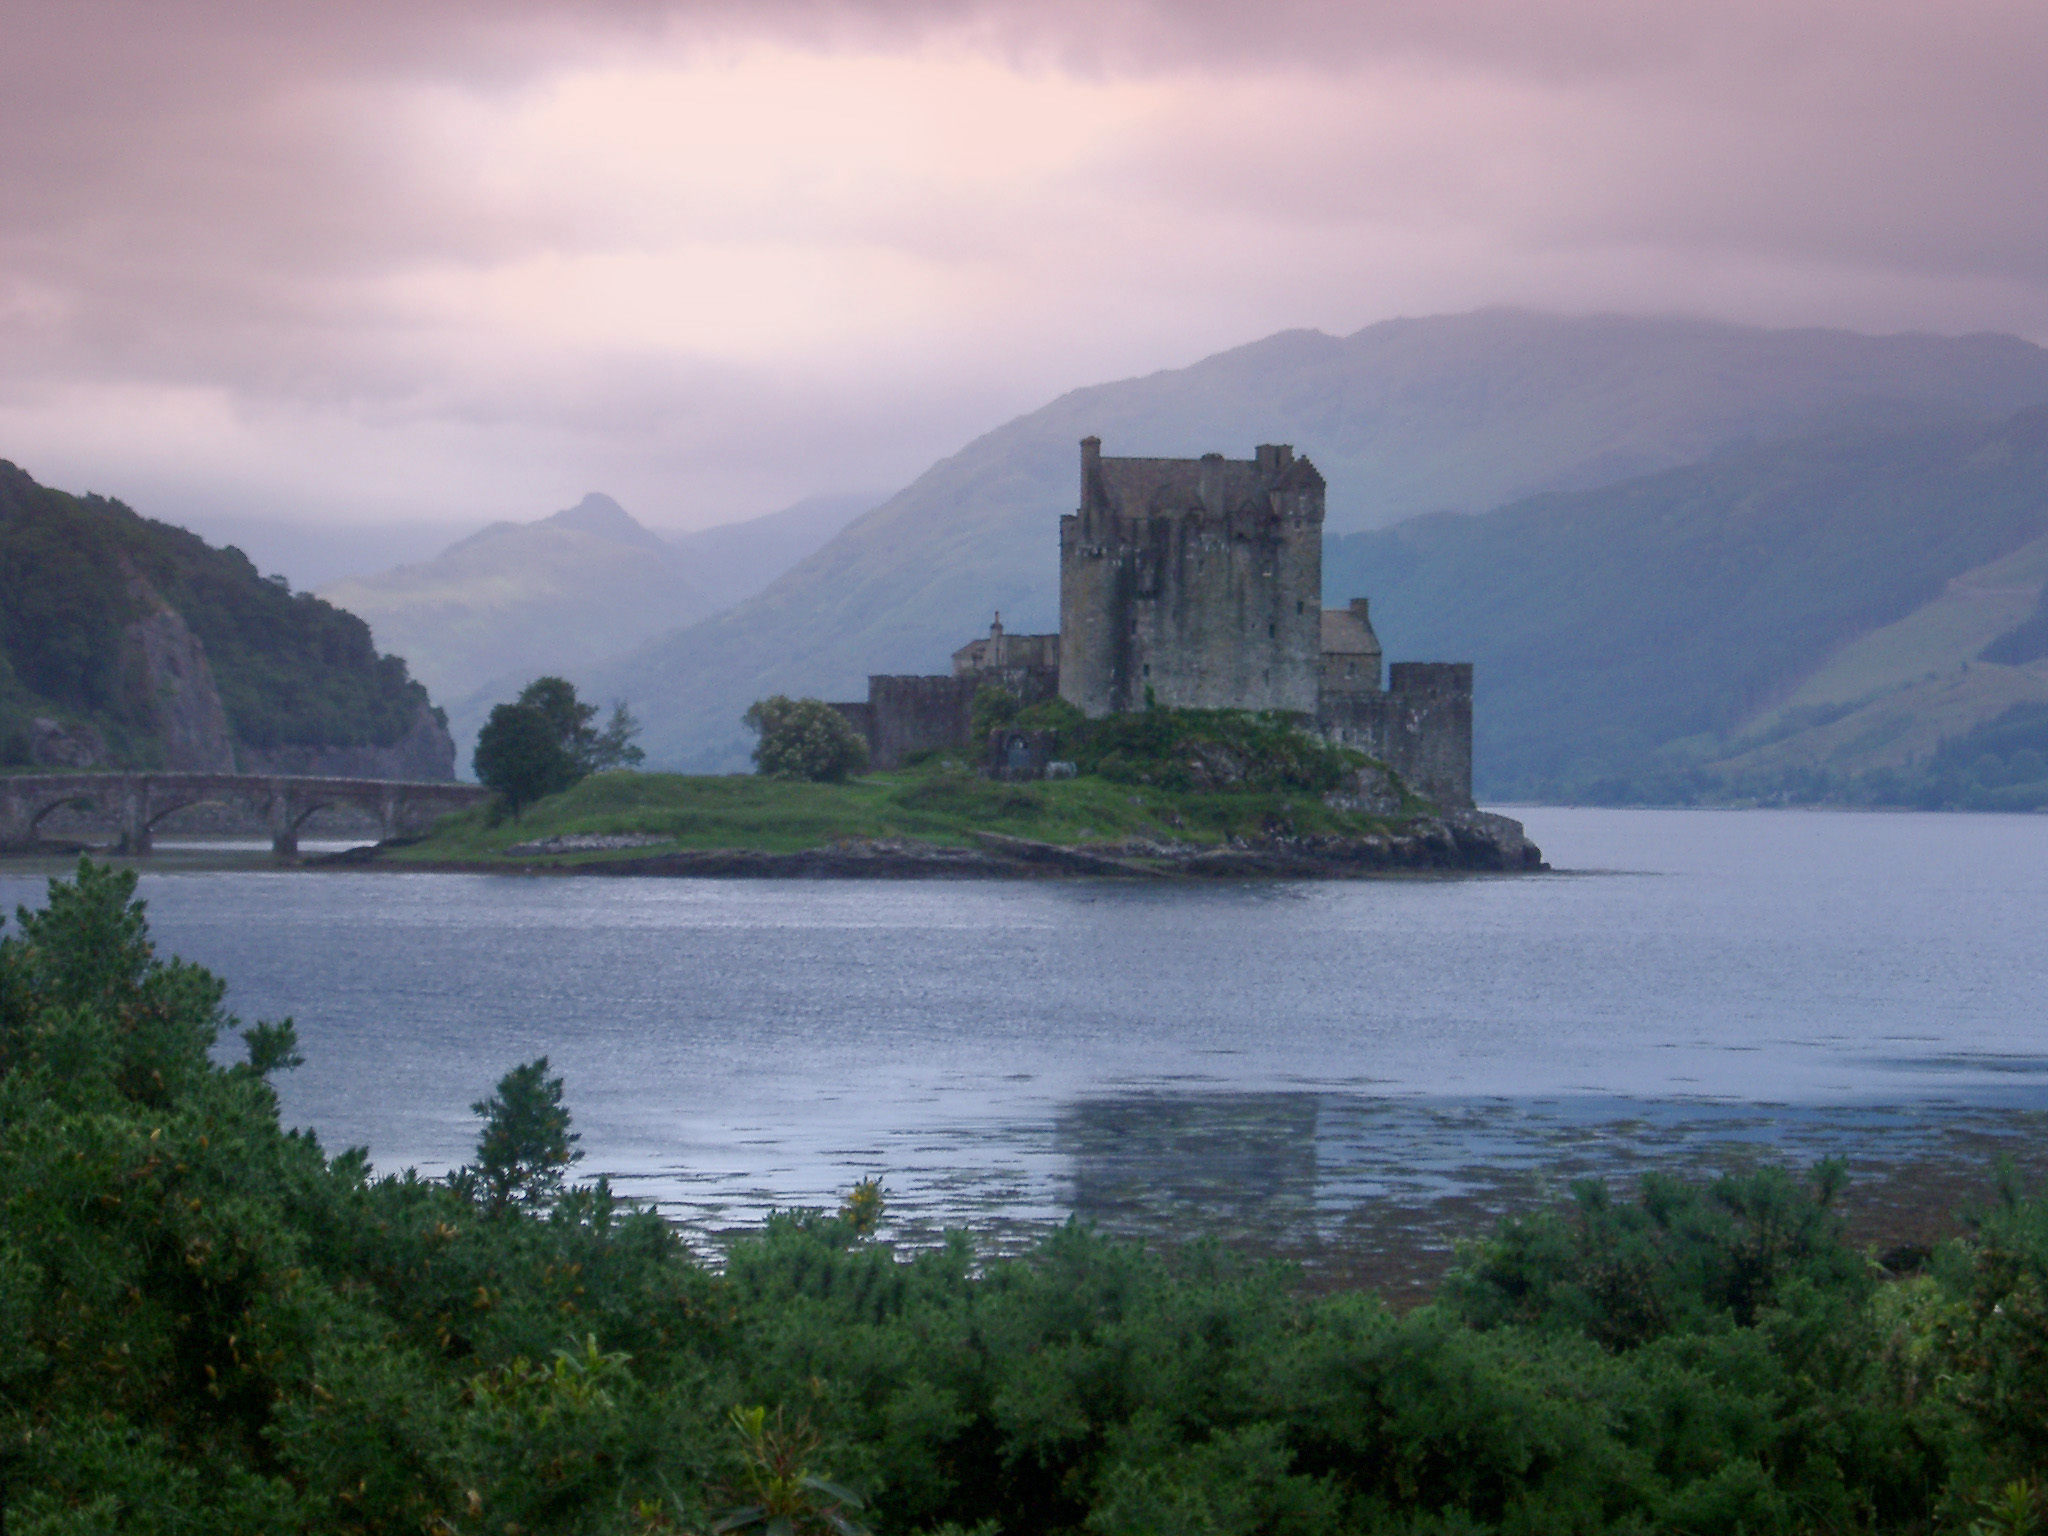 Scenic atmospheric panoramic view of Eilean Donan Castle, Scotland standing on its island in the centre of Loch Duich on a calm cloudy day with a feint mist and purple tint to the sky